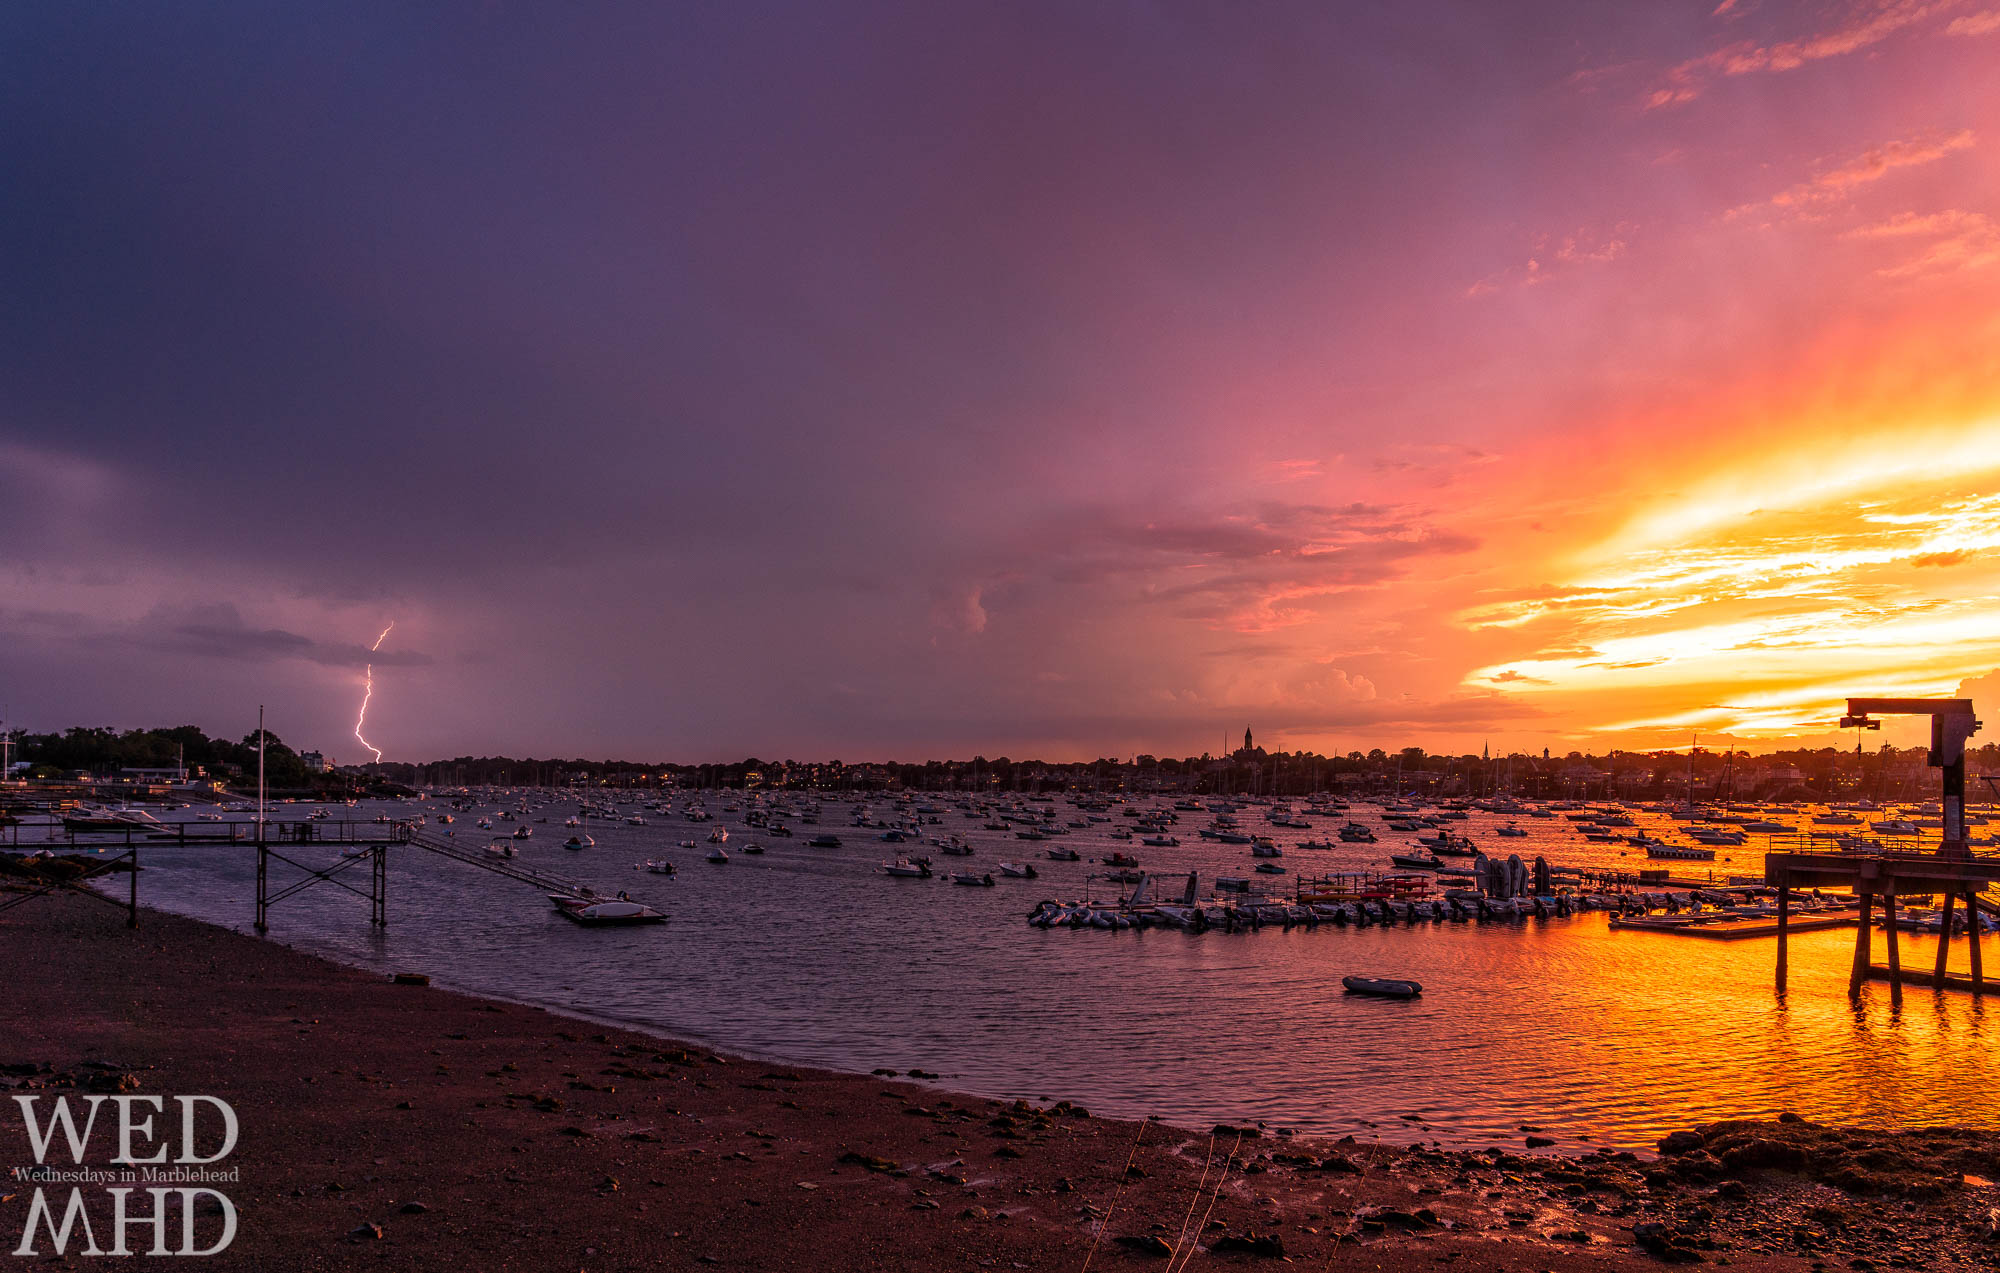 A bolt of lightning strikes during the peak of sunset in this view of Marblehead Harbor captured from Corinthian Lane